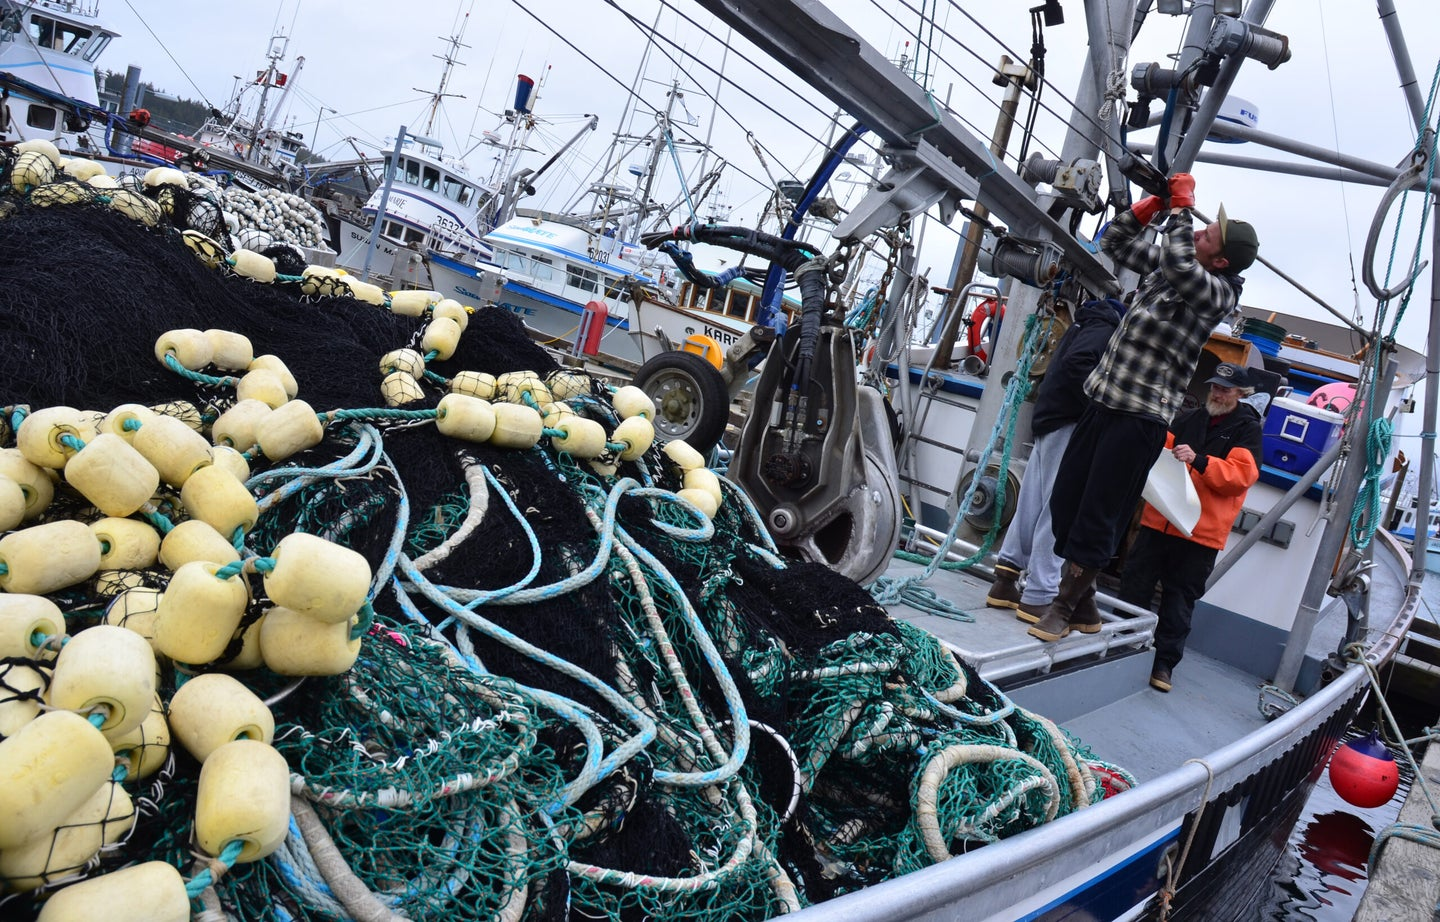 We're Catching Millions Of Tons More Fish Each Year Than We Report